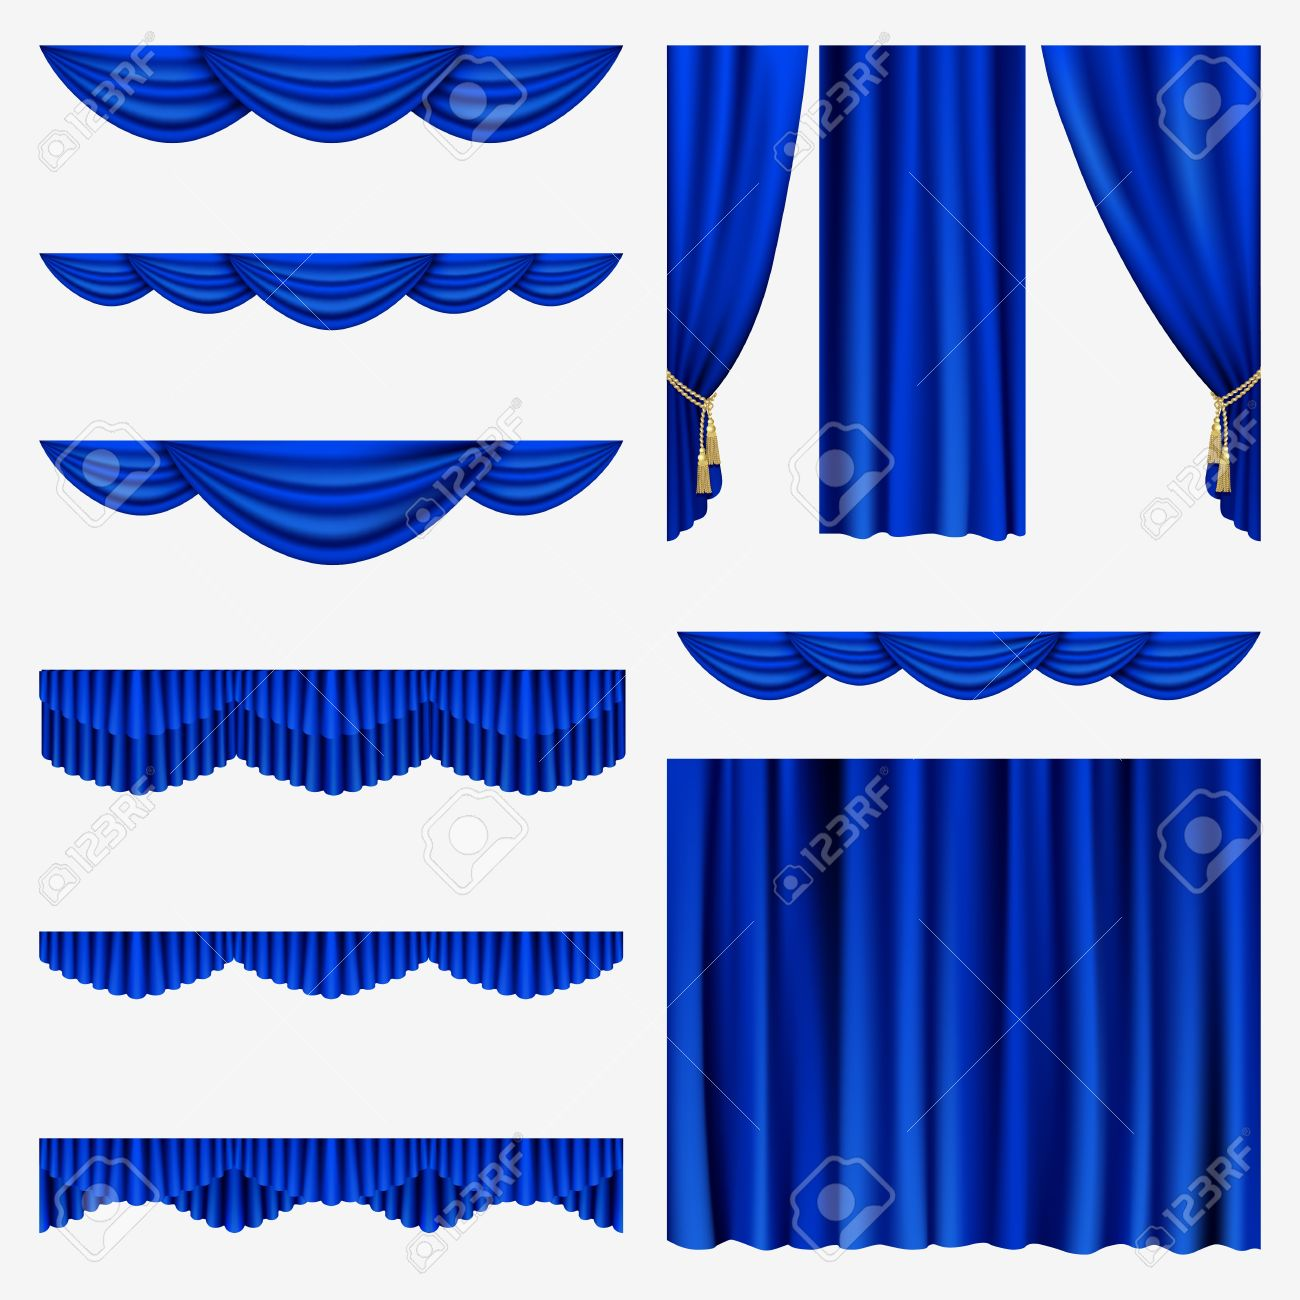 Blue stage curtains blue stage curtain vector free vector in - Set Of Blue Curtains To Theater Stage Mesh Stock Vector 17880194